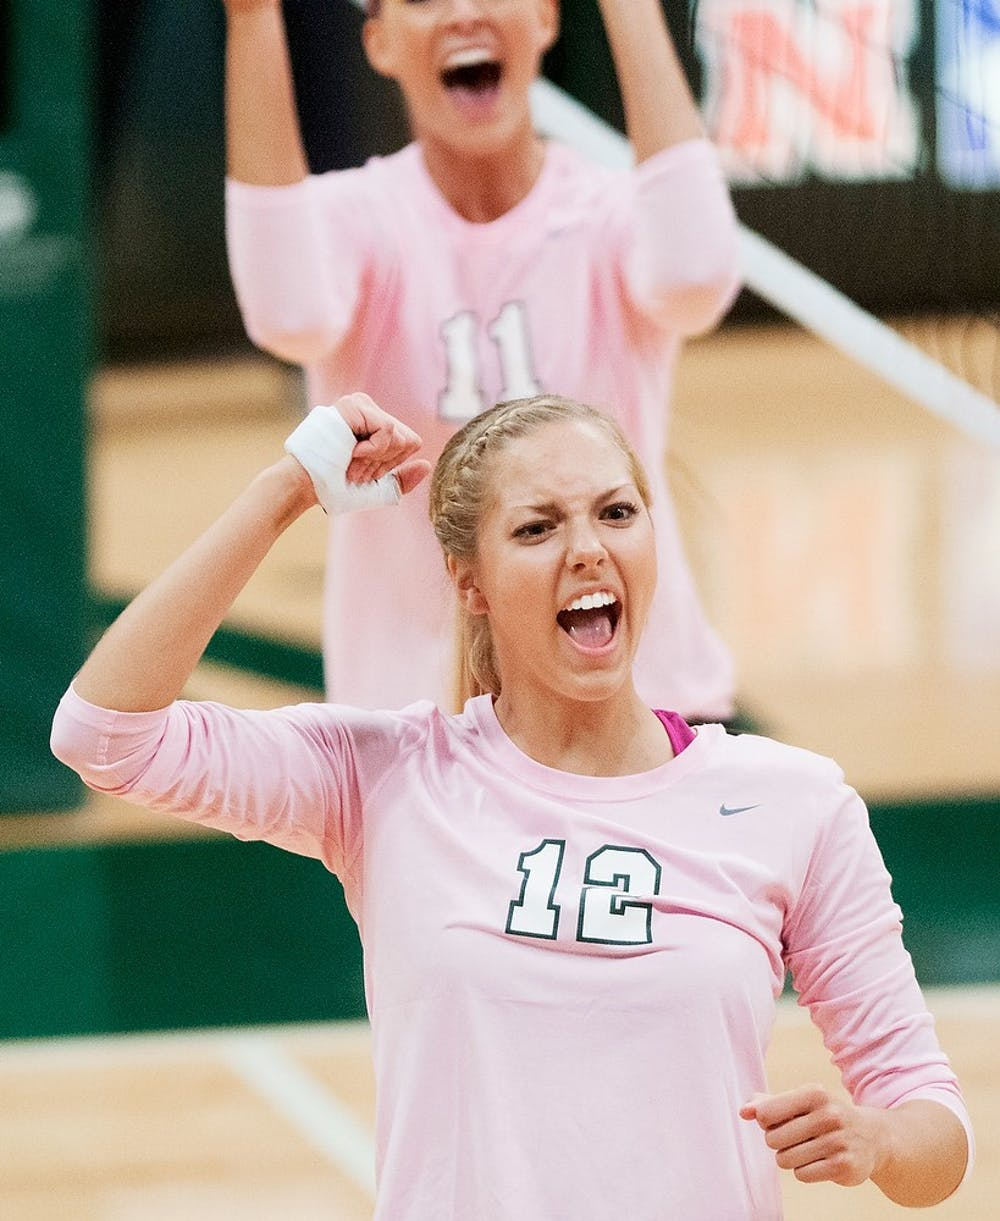 <p>Freshman setter Rachel Minarick celebrates after a point Oct. 11, 2014, during the game against Iowa at Jenison Field House. The Spartans defeated the Hawkeyes, 3-0. Jessalyn Tamez/The State News</p>